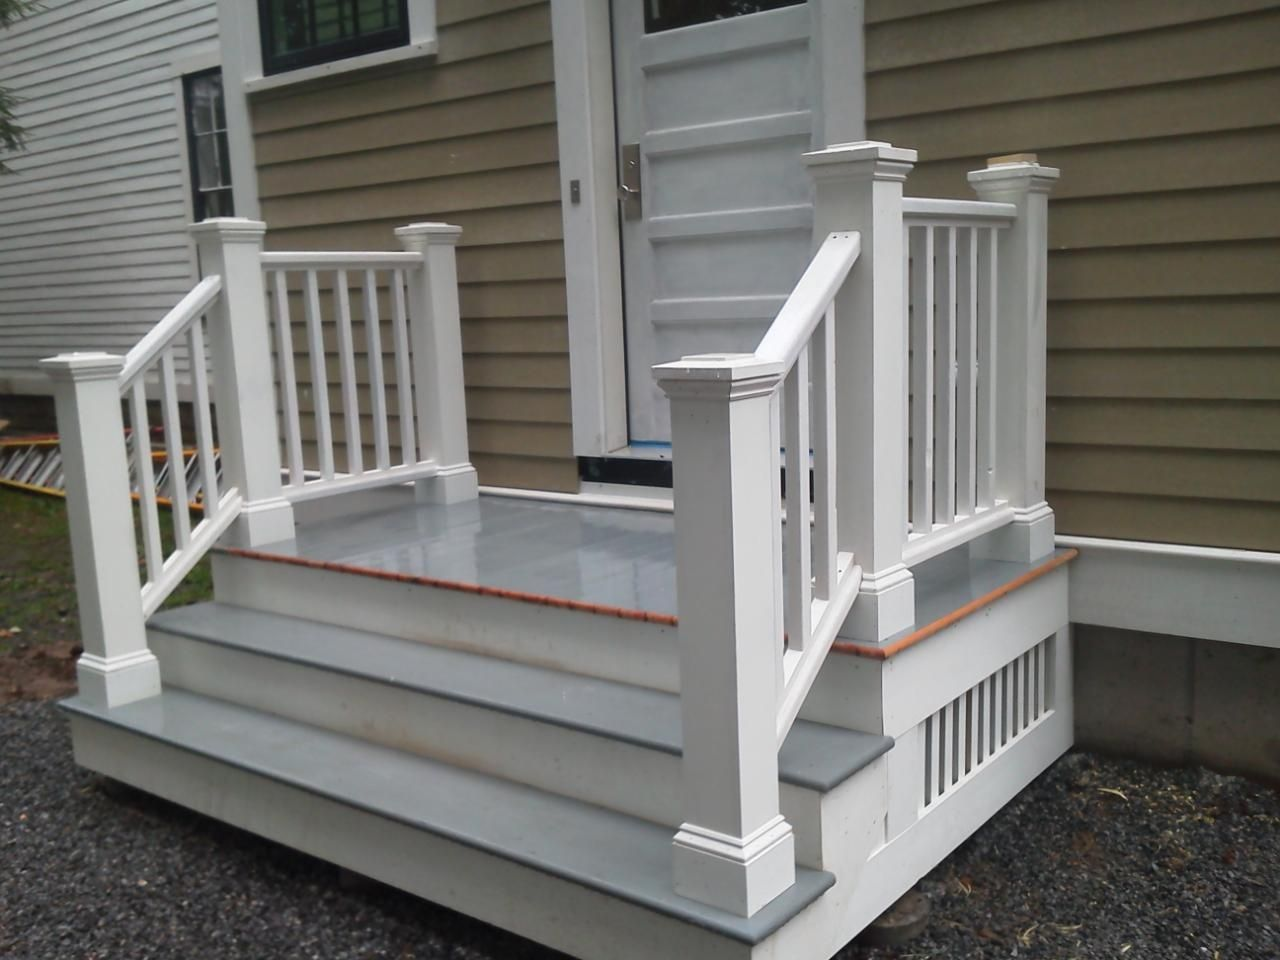 Side Door Steps Front Door Steps Front Porch Steps Patio Stairs | Outside Steps For Seniors | Dreamstime | Stair Treads | Handrail | Stainless Steel | Walkway